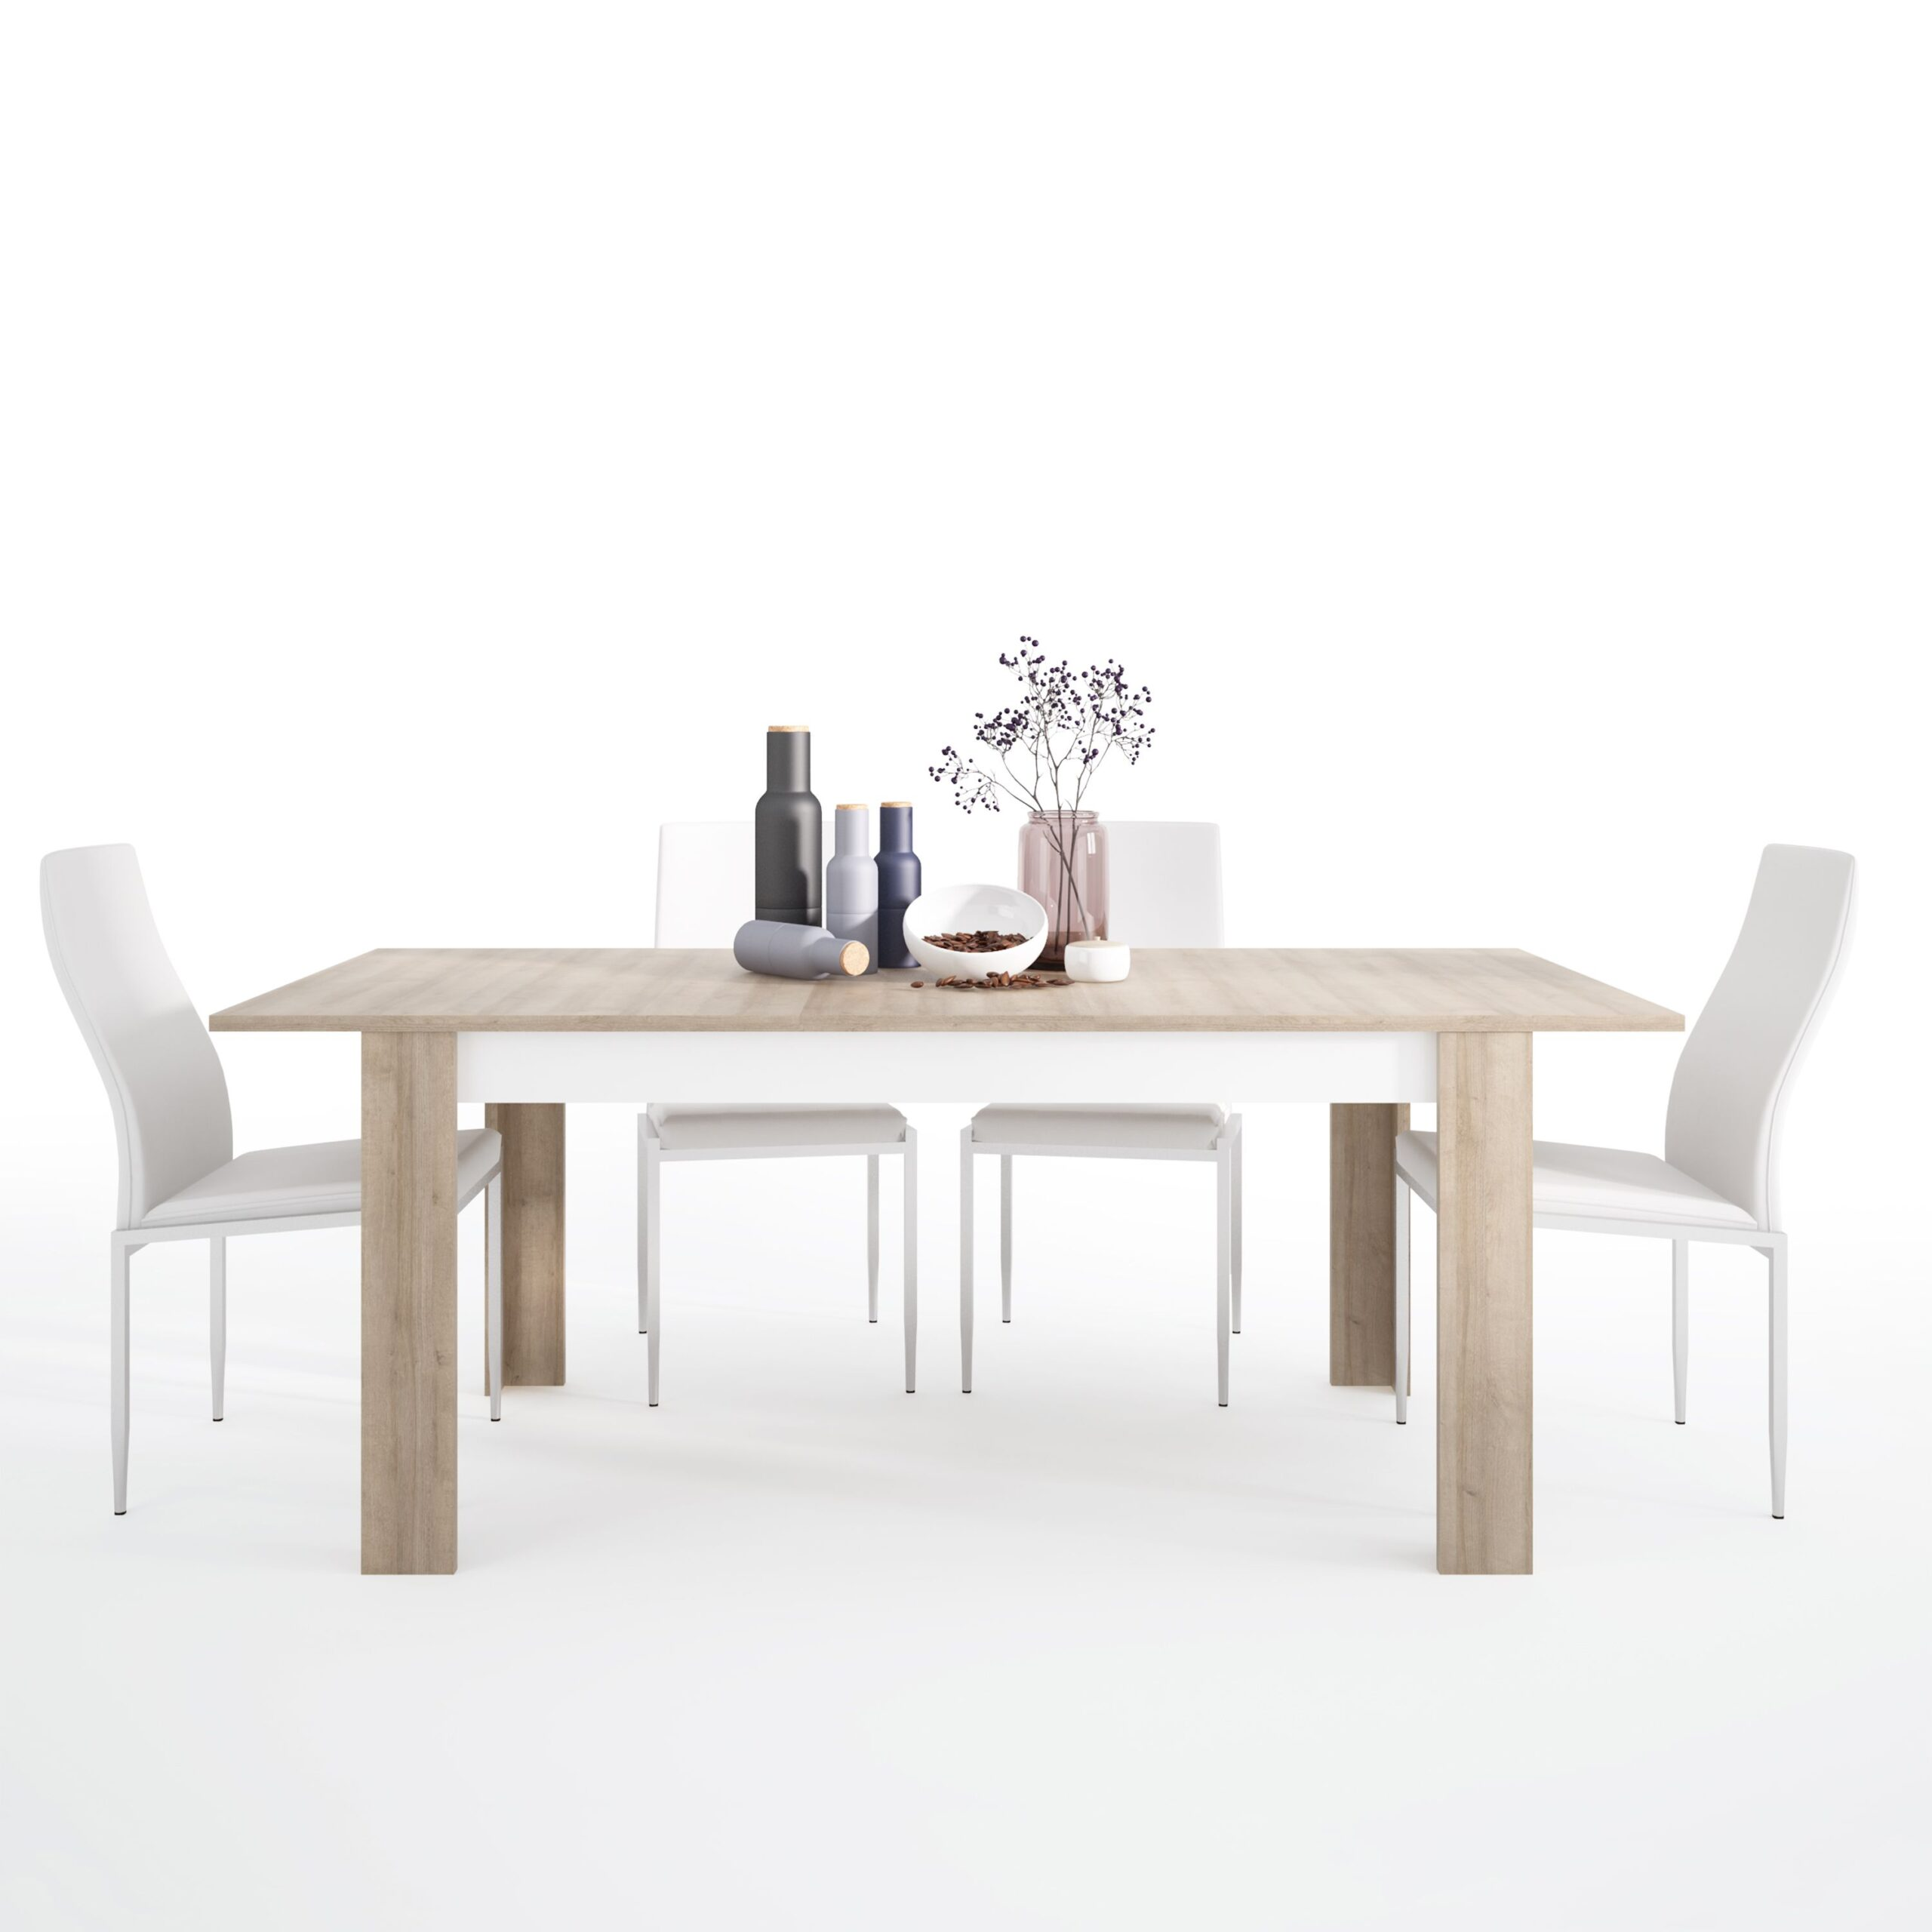 Lion Dining set package Lion Large extending dining table 160/200 cm + 6 Lillie High Back Chair White.